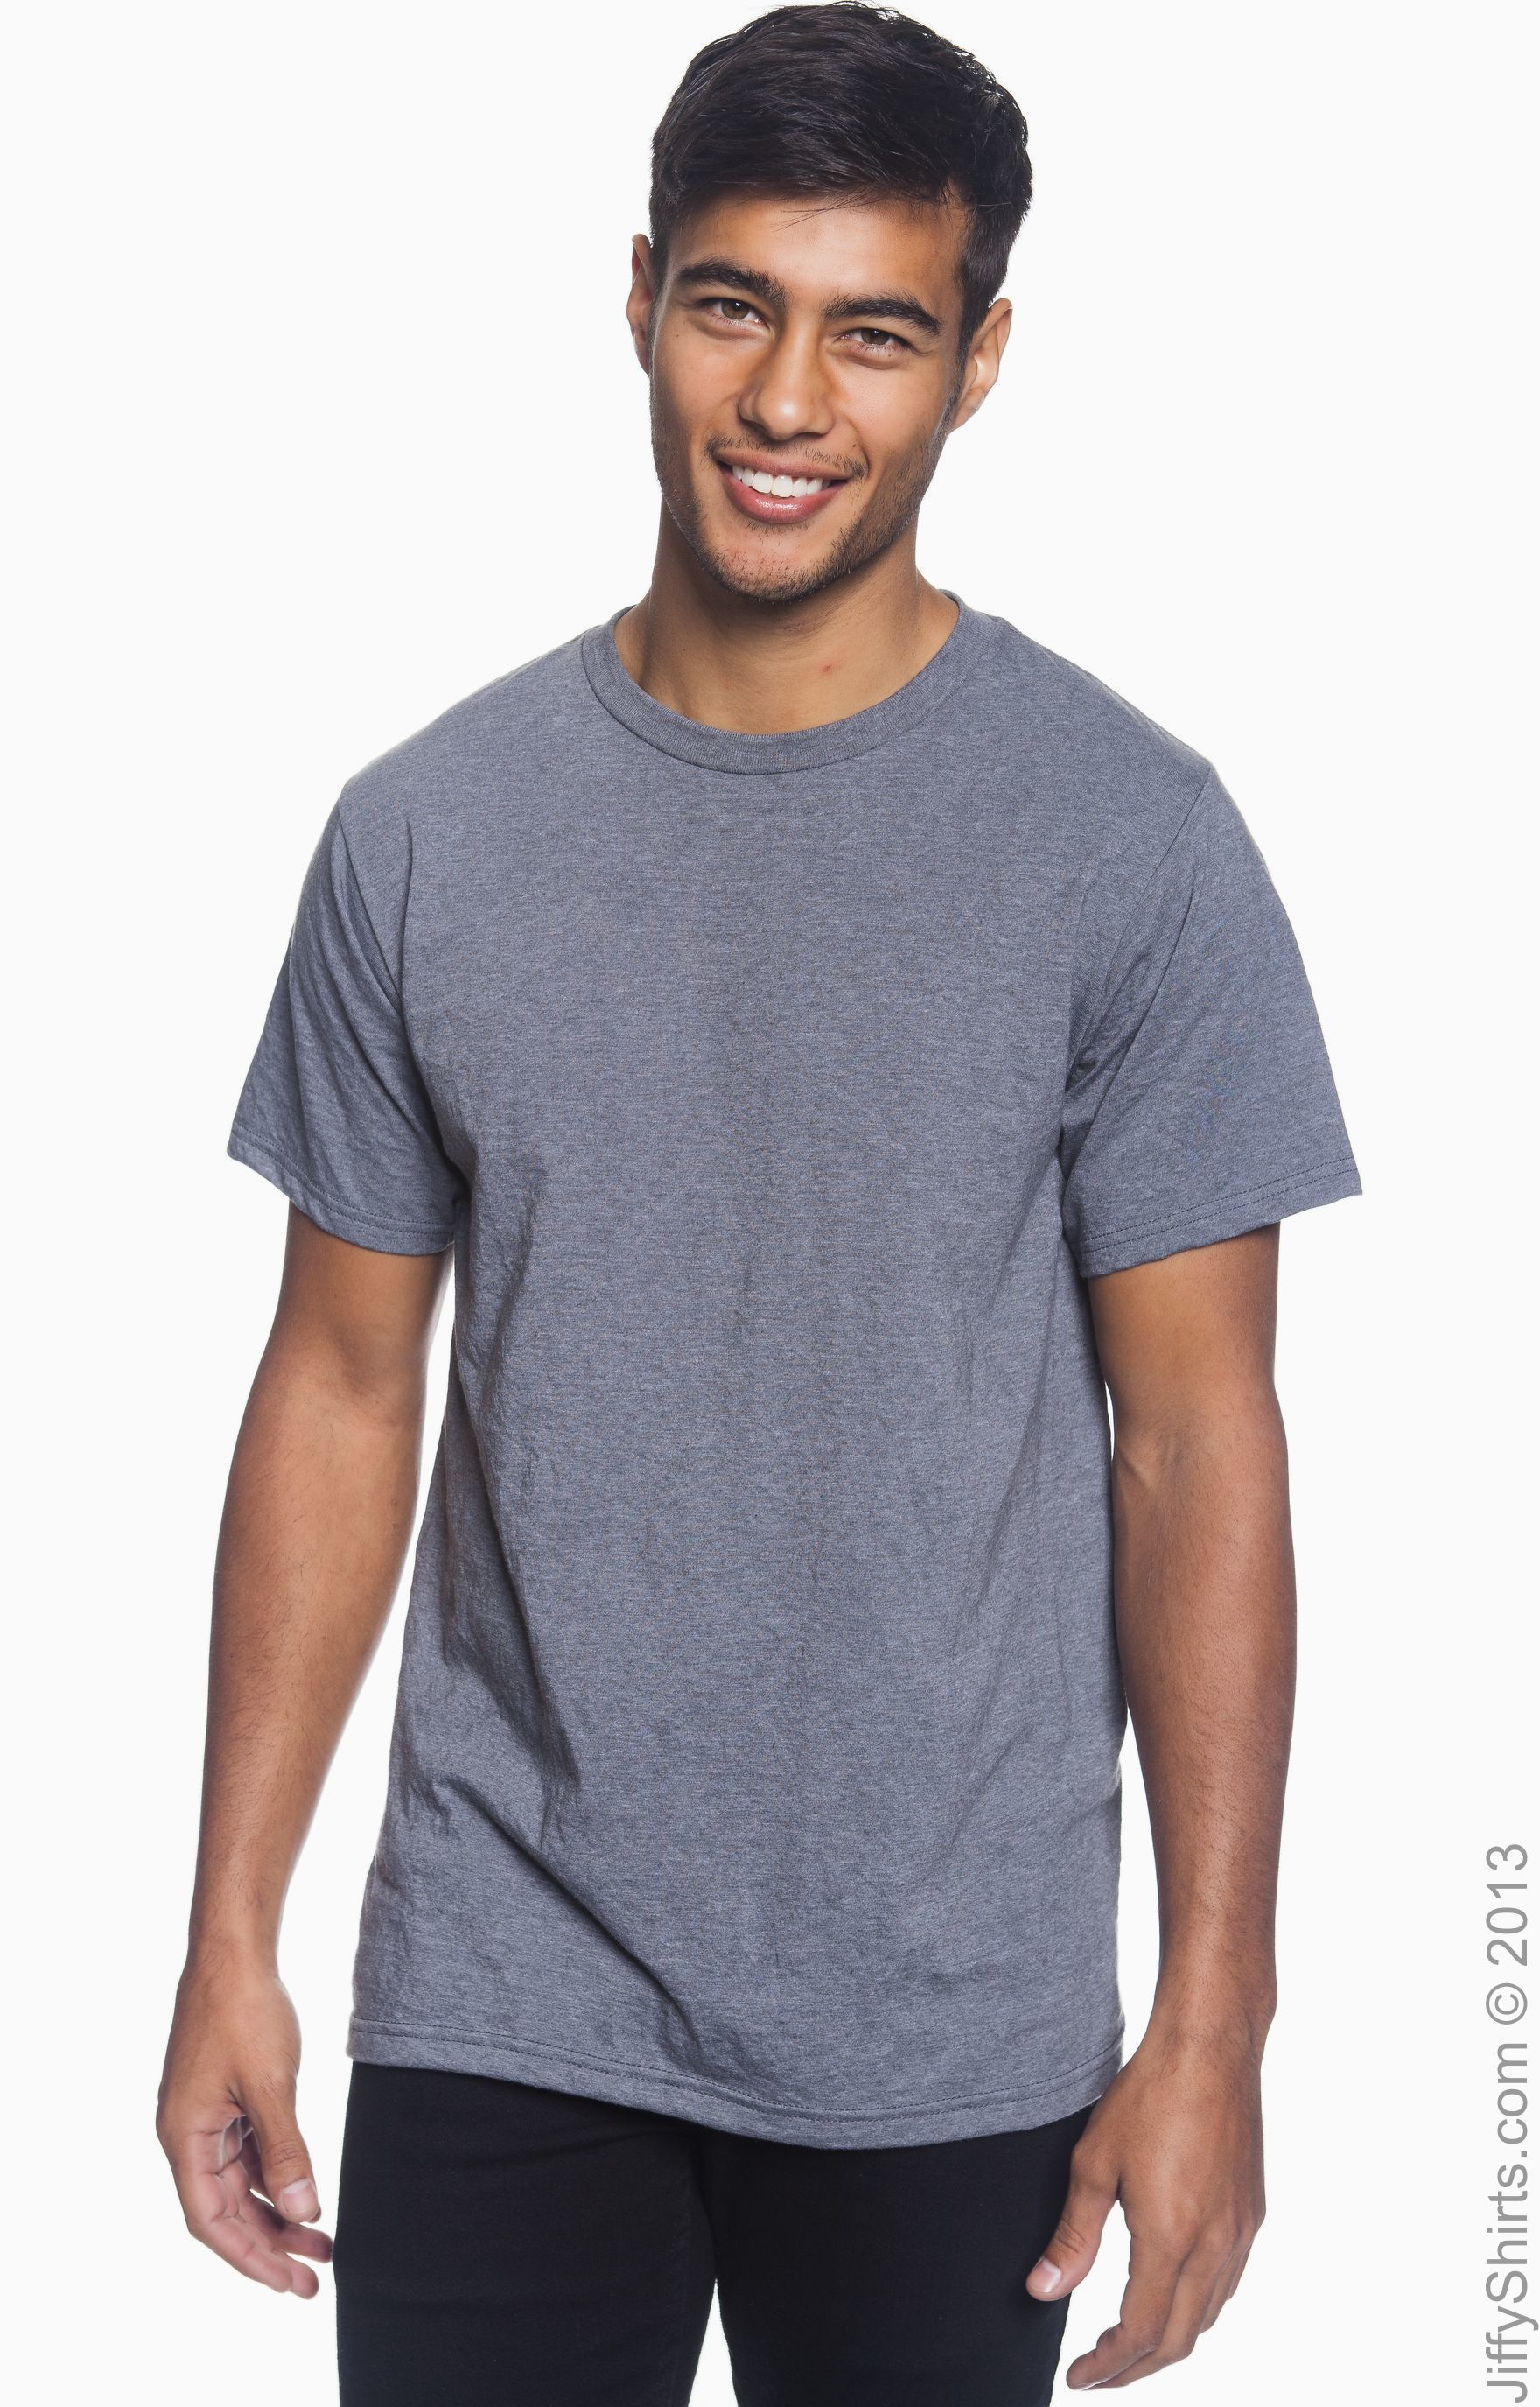 Ringspunrecycled Polyester T 450 Anvil Shirt Organic Charcoal Heather wOPZlTukXi